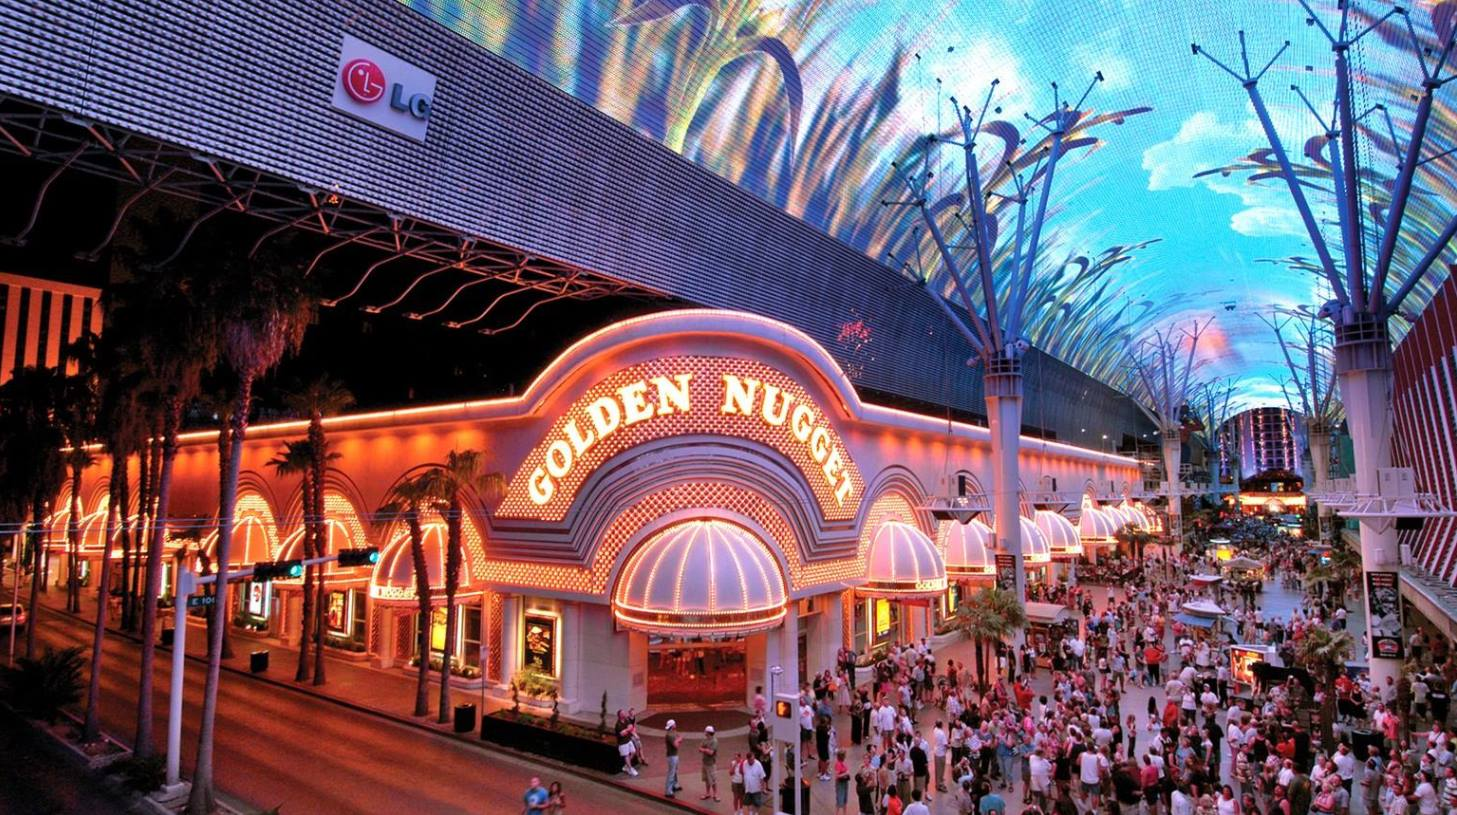 The busy western corner entrance and bright signage of the Golden Nugget Las Vegas resort on downtown's Fremont Street.